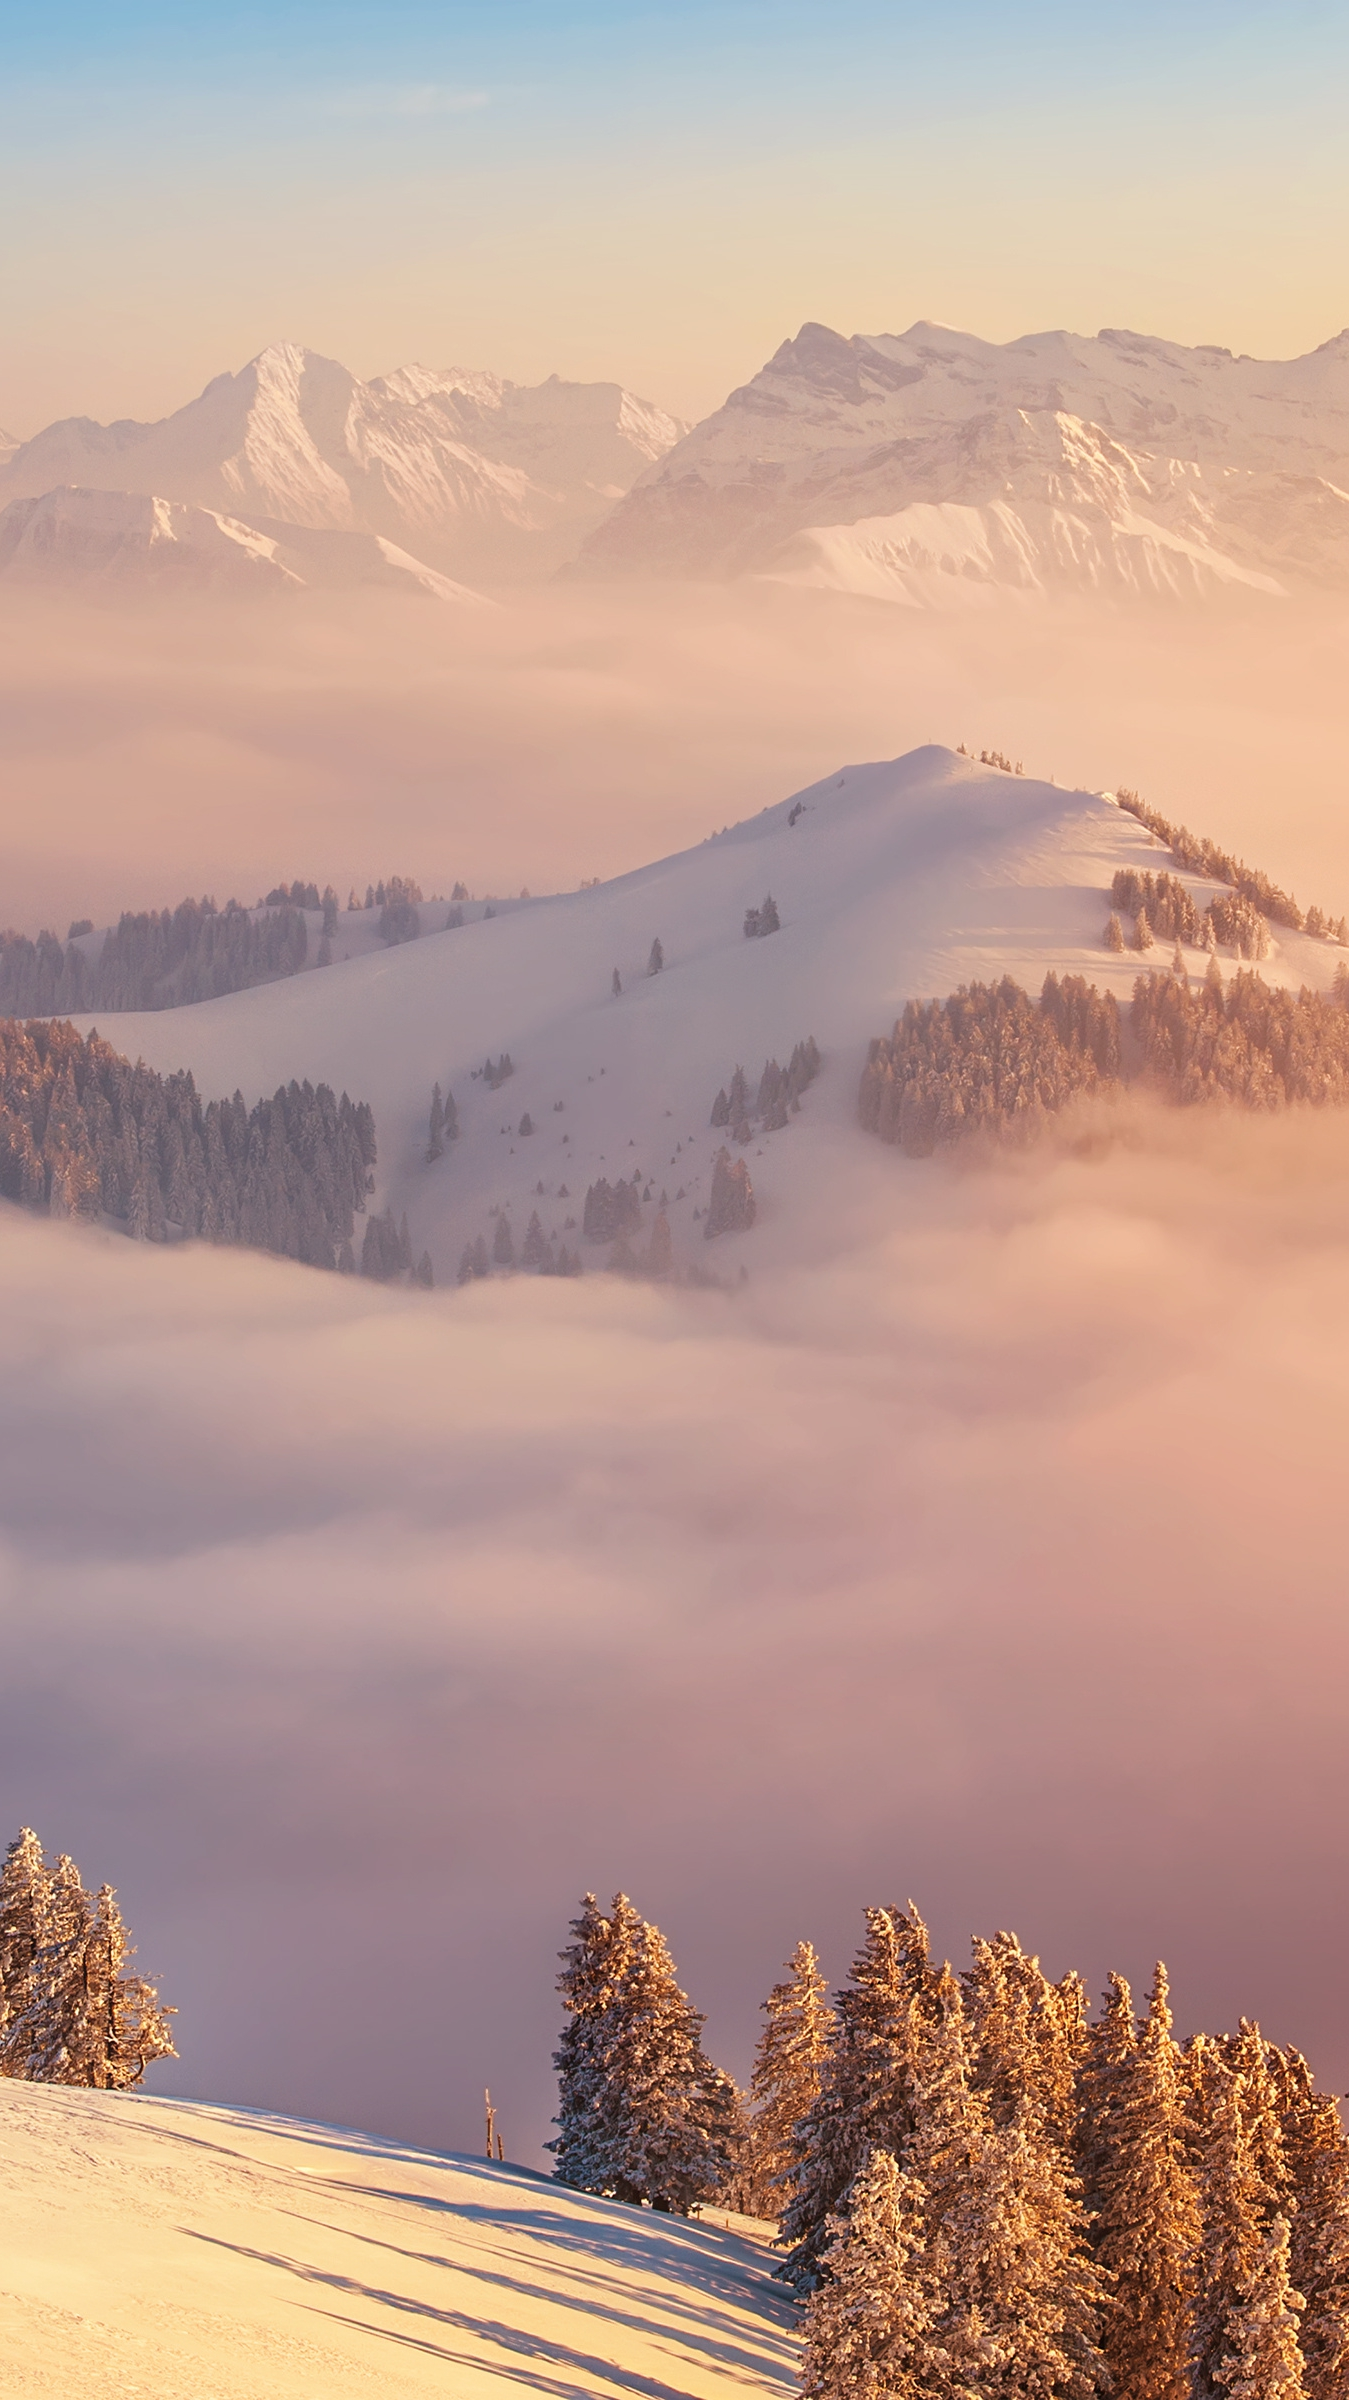 Wallpaper For Phone Quotes Switzerland Mount Rigi Alps Clouds Iphone Wallpaper